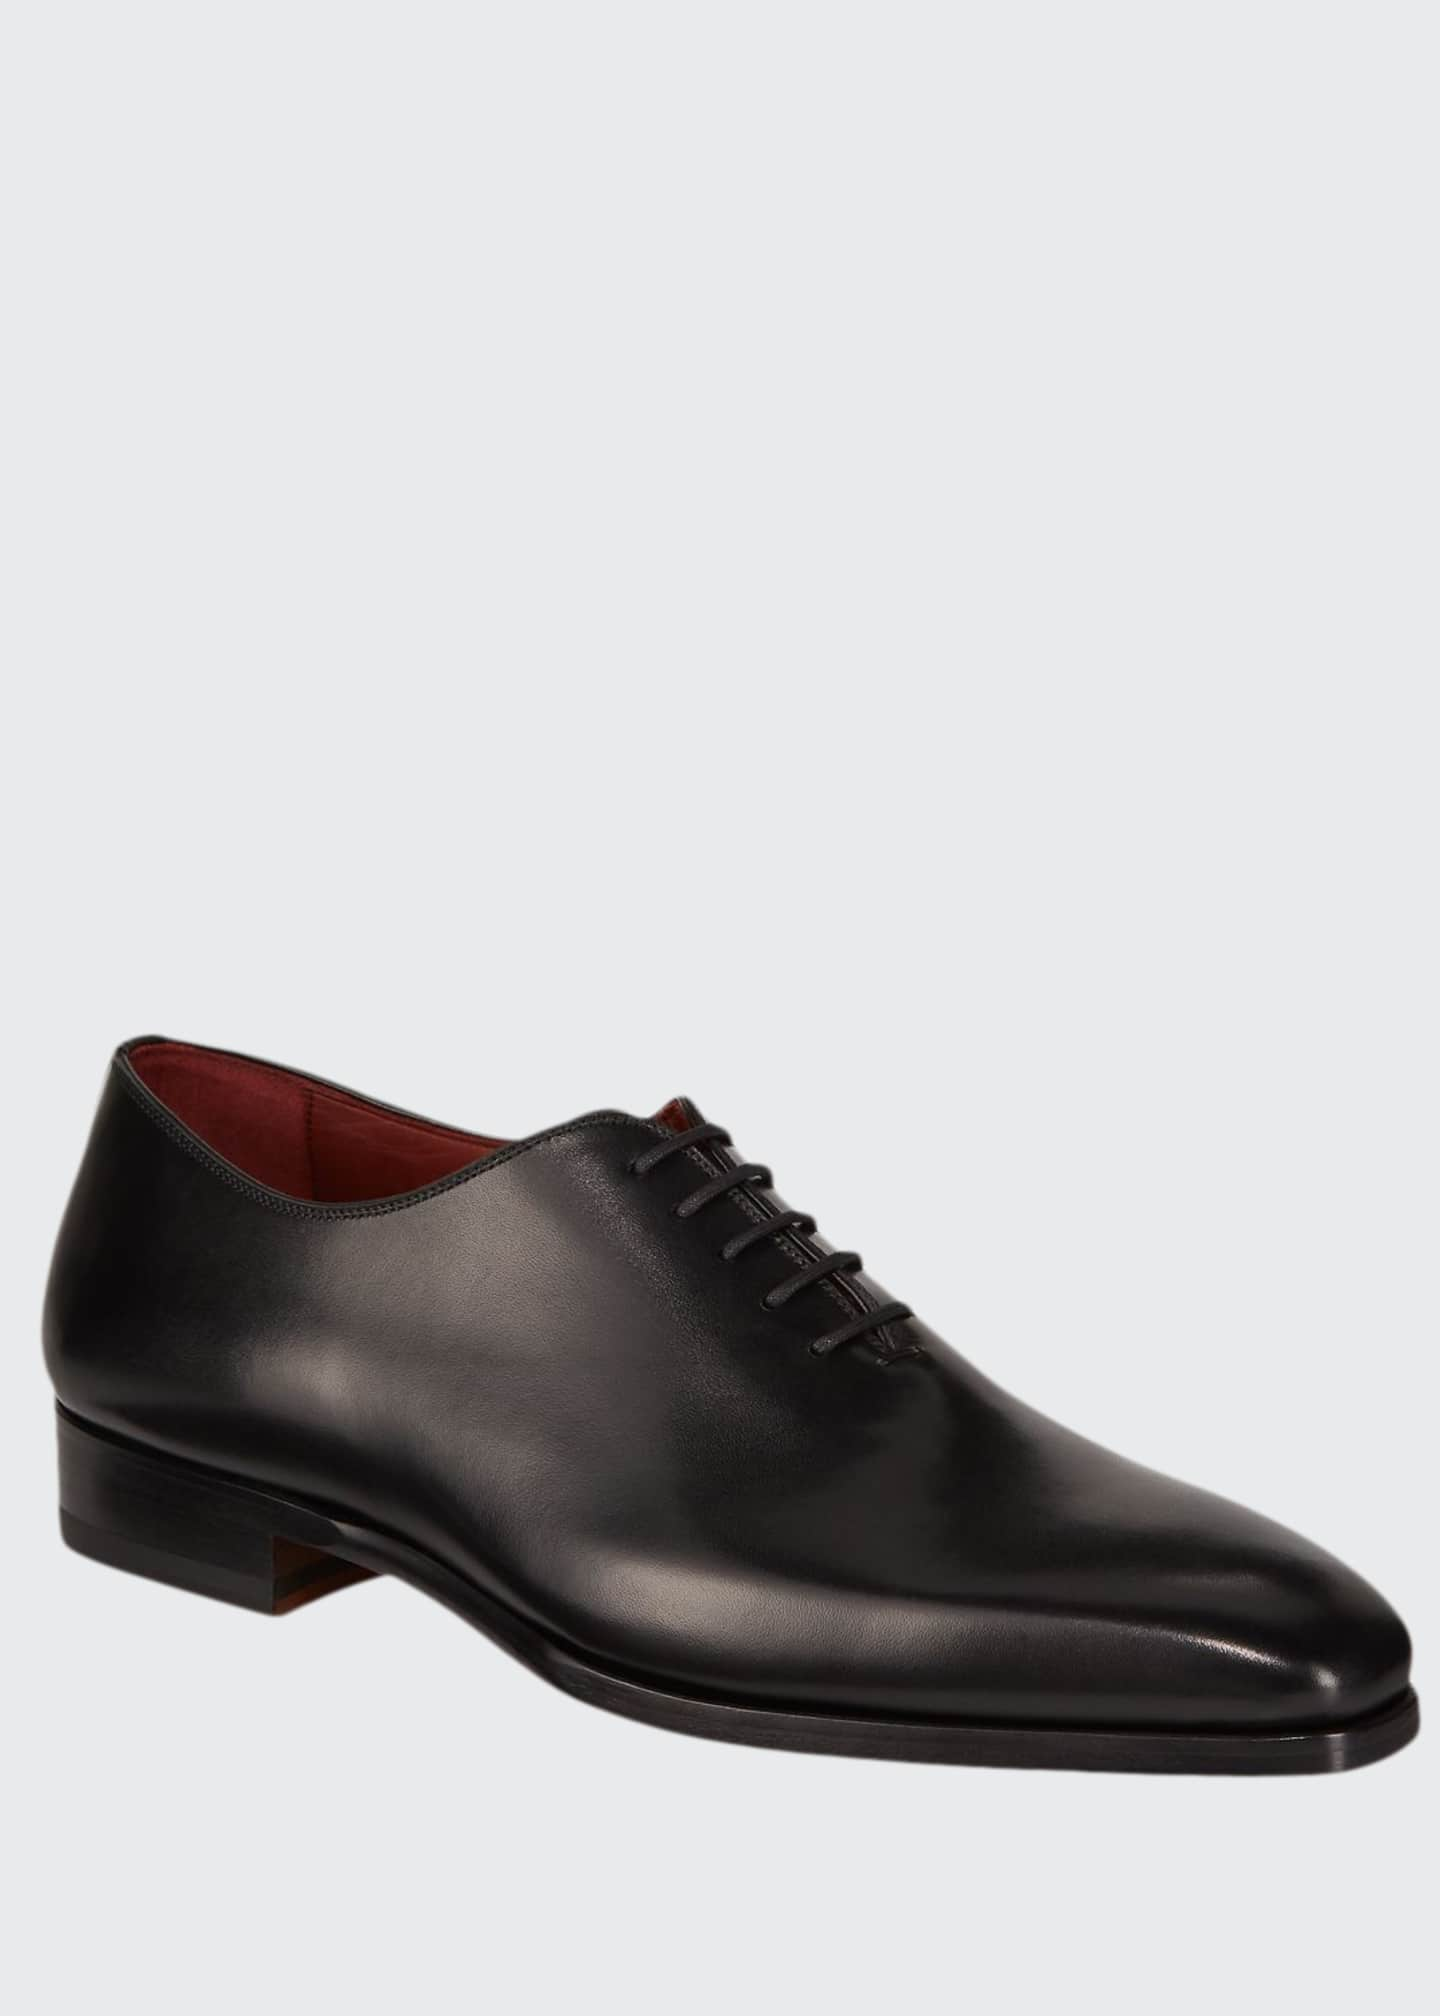 Image 1 of 3: Men's Bol Arcade Leather Dress Shoes